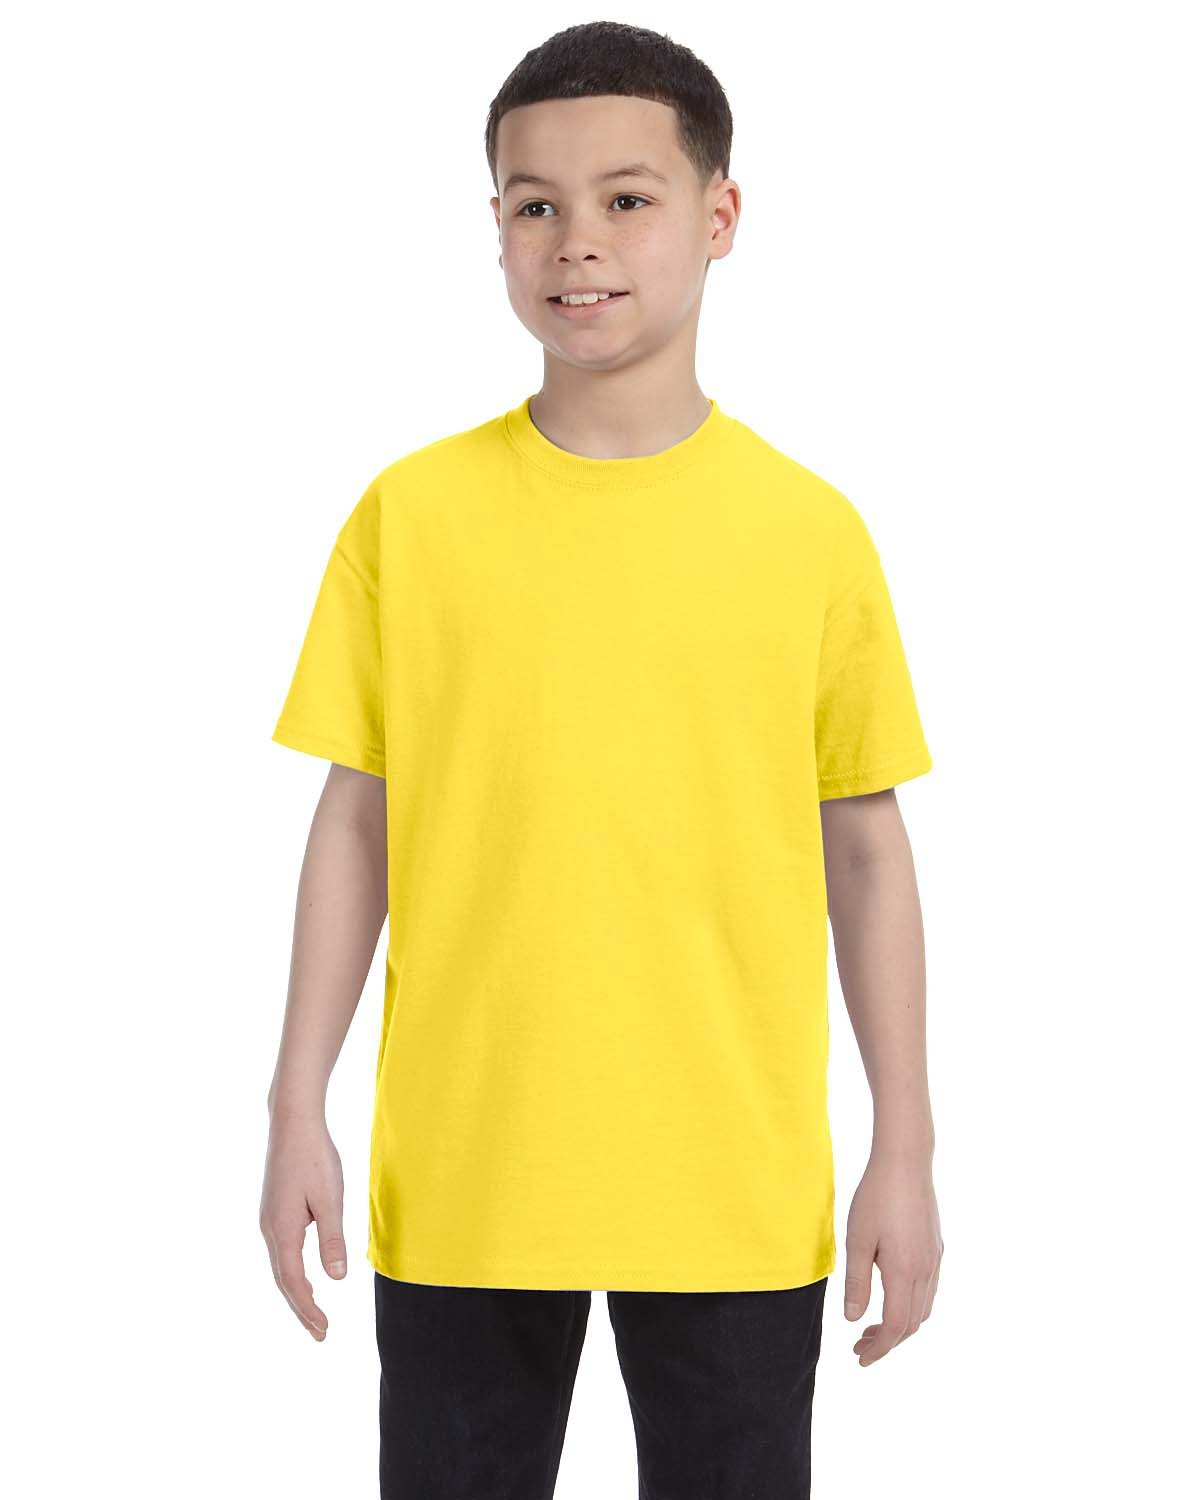 Hanes Youth Authentic-T T-Shirt YELLOW